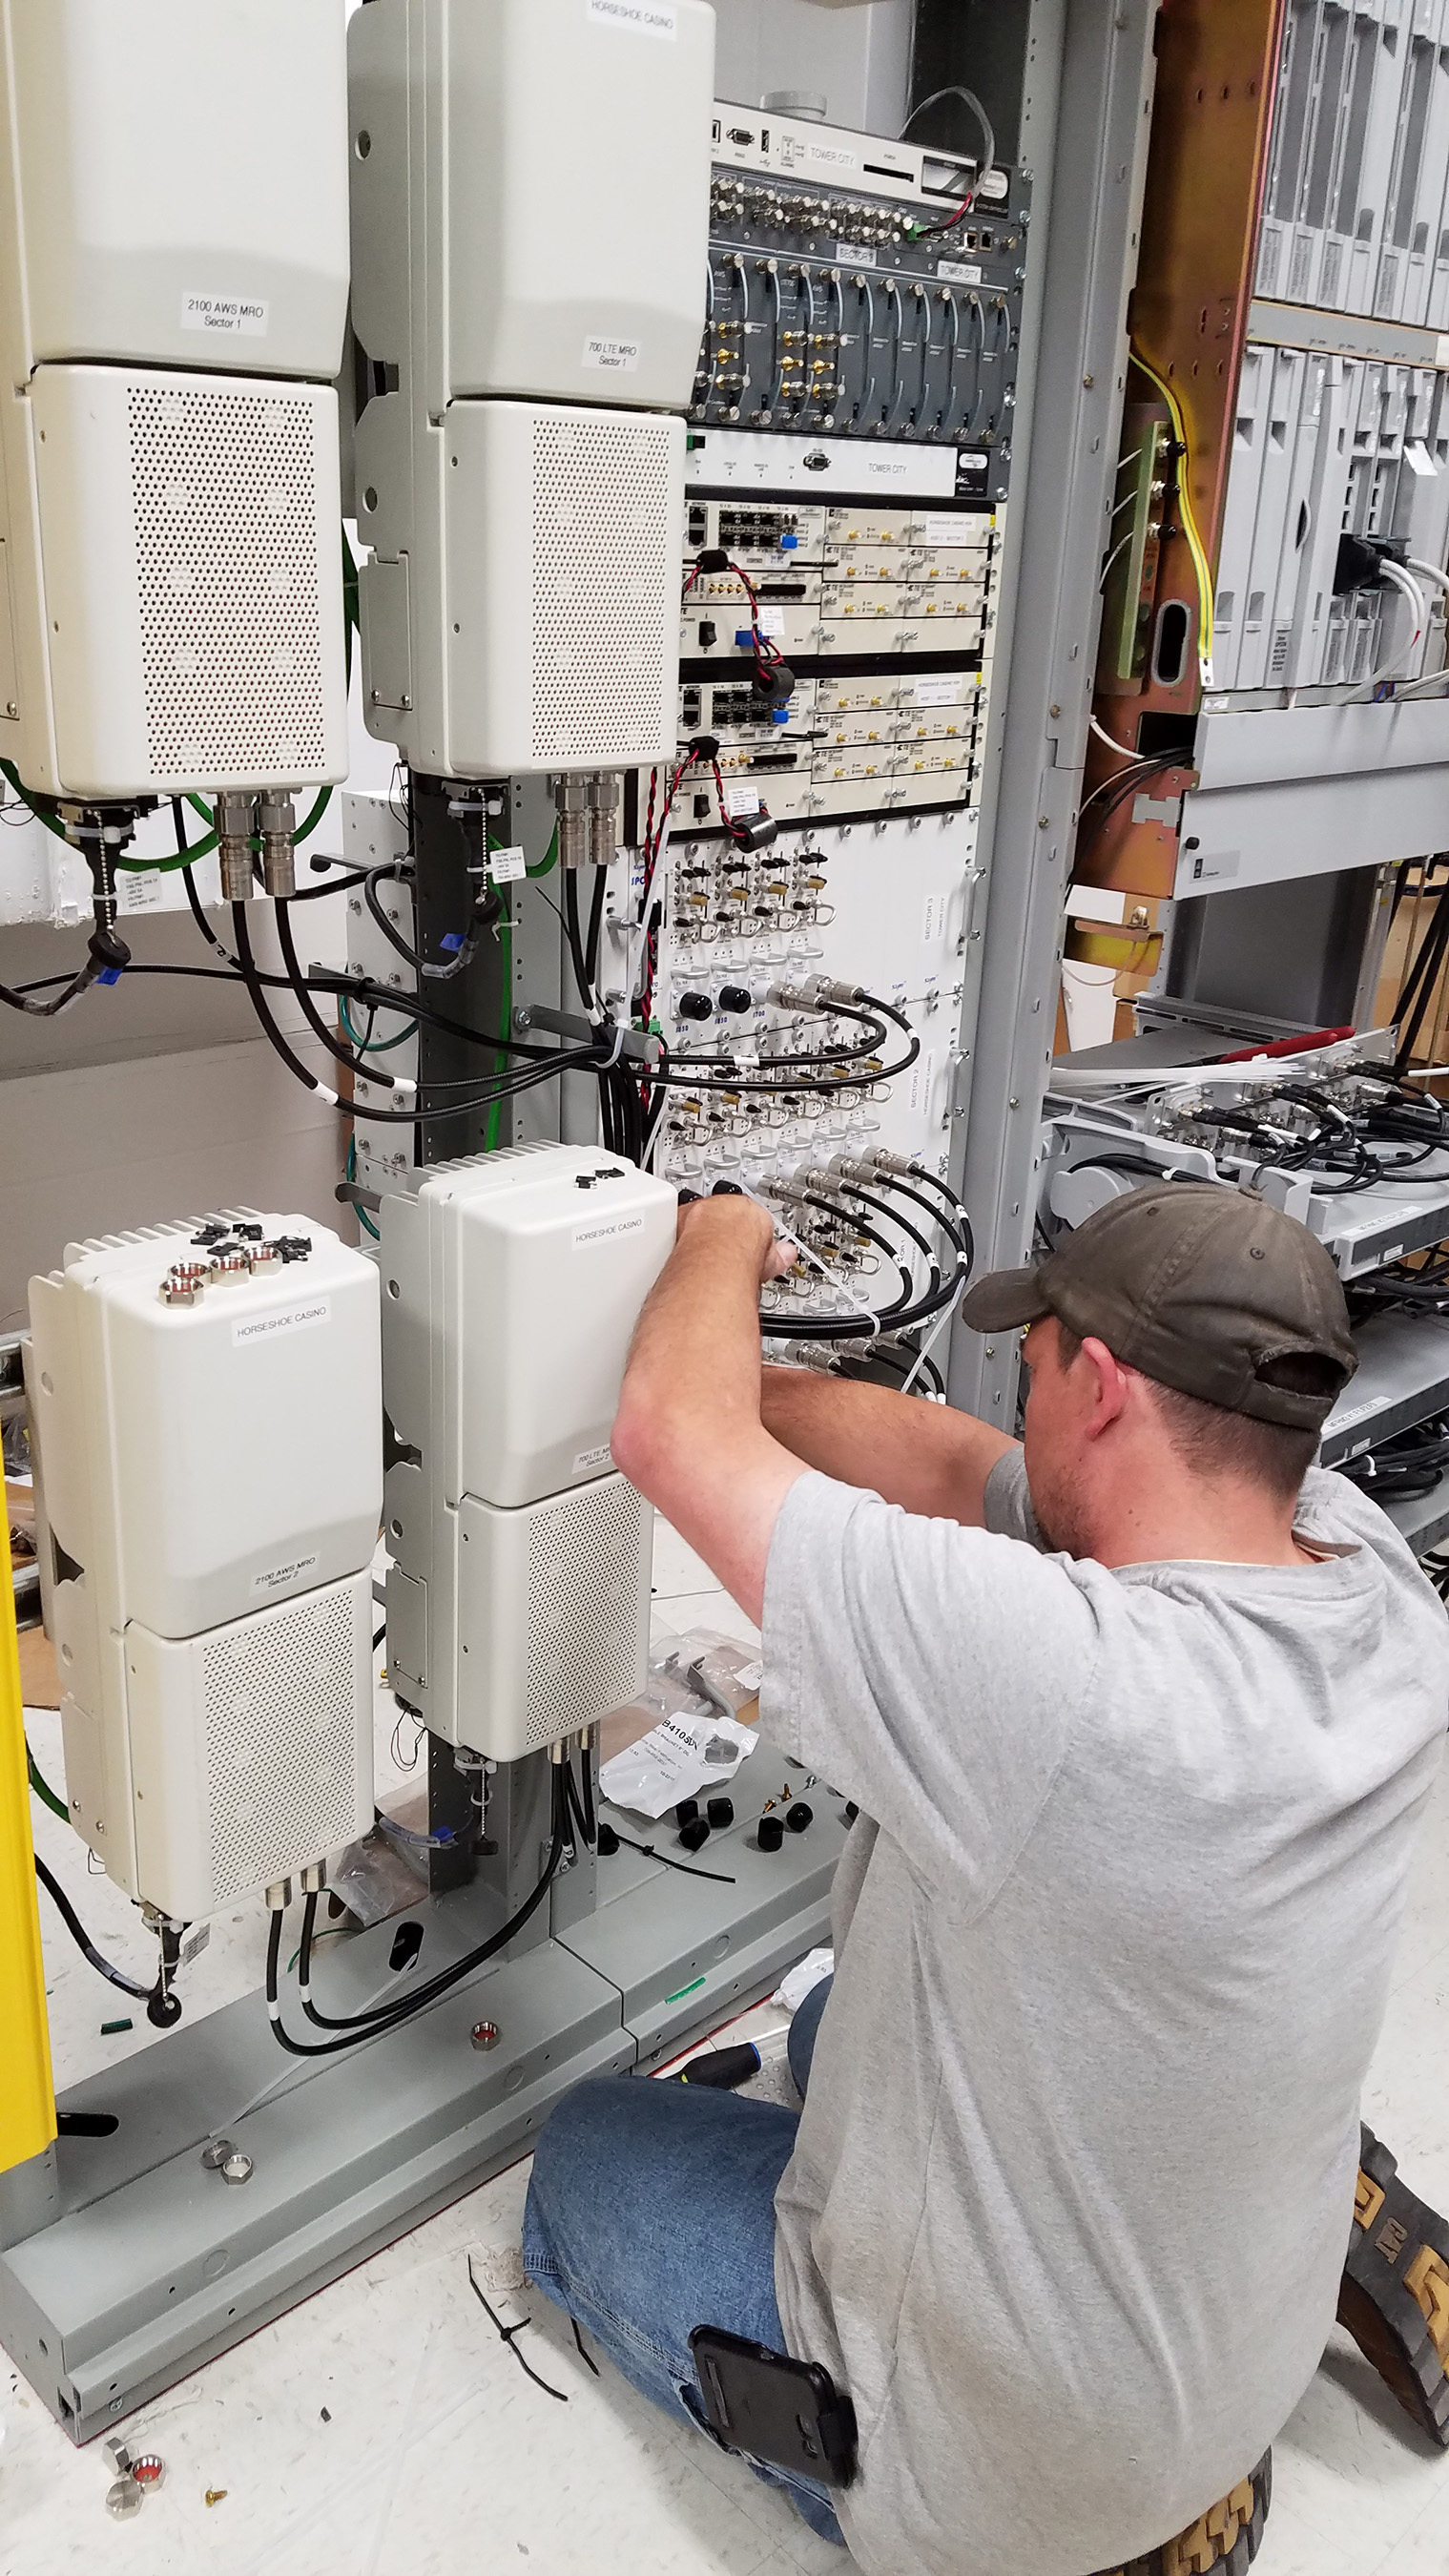 Verizon engineer works to add capacity to Verizon's network in Cleveland